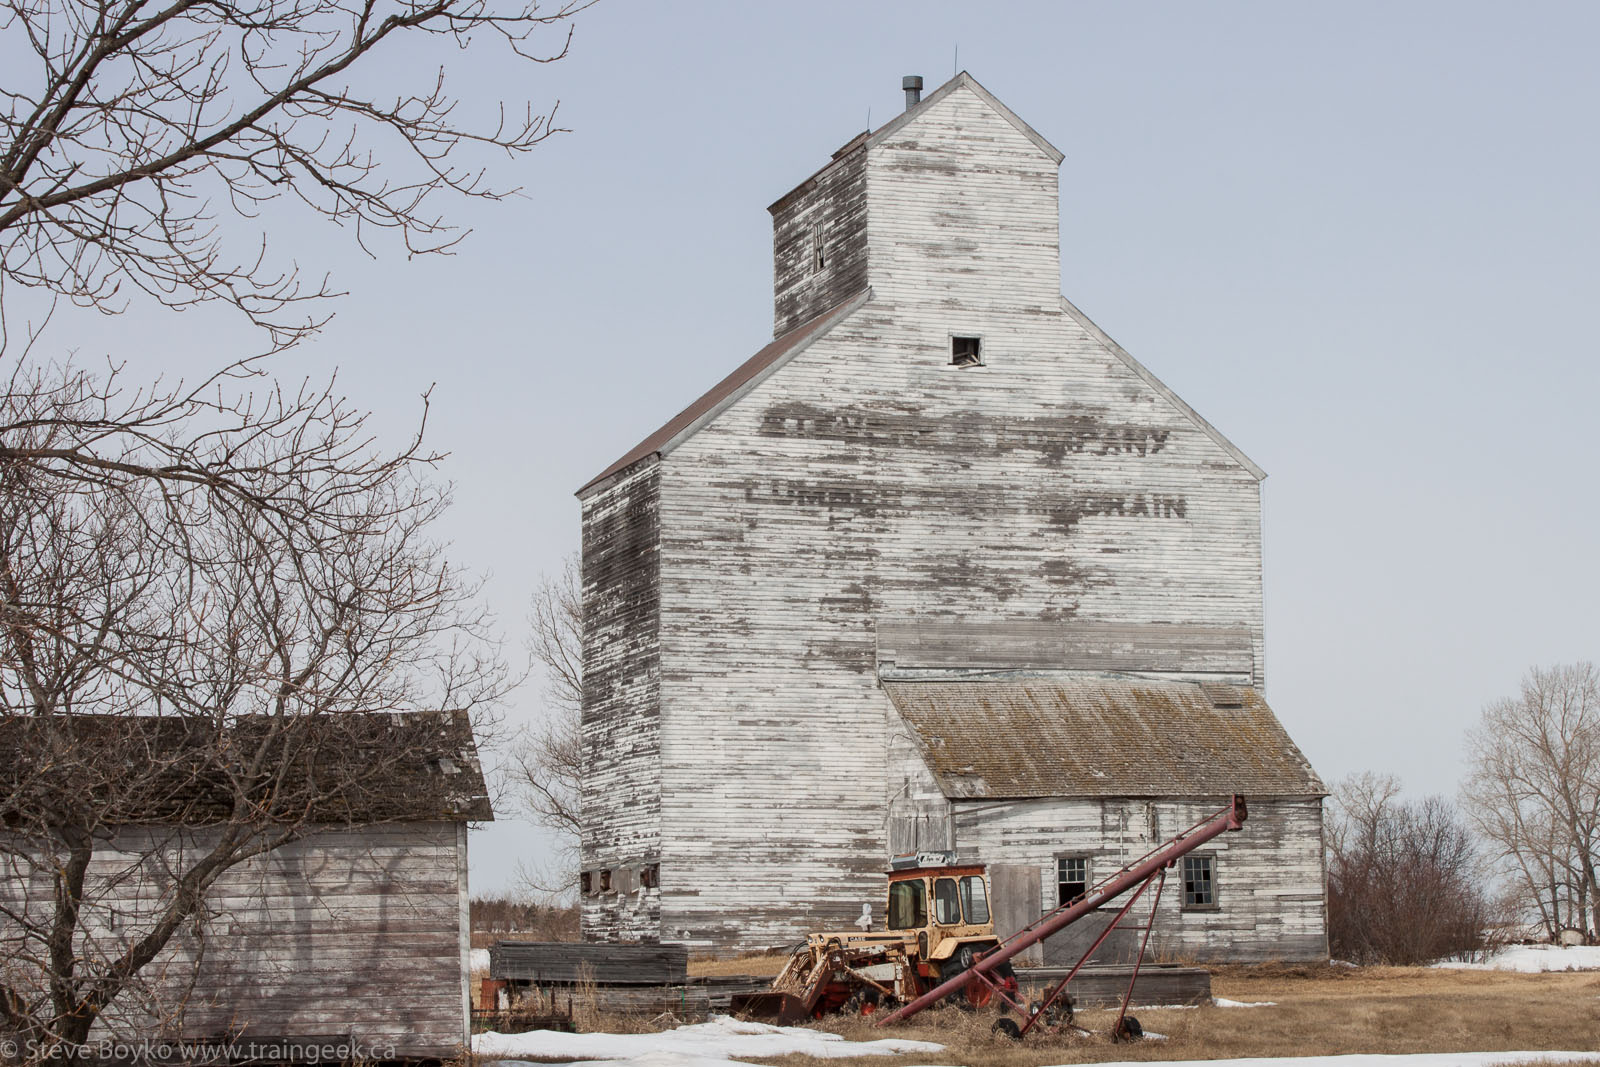 Stevens and Company grain elevator in Fannystelle, MB 2014/04/18